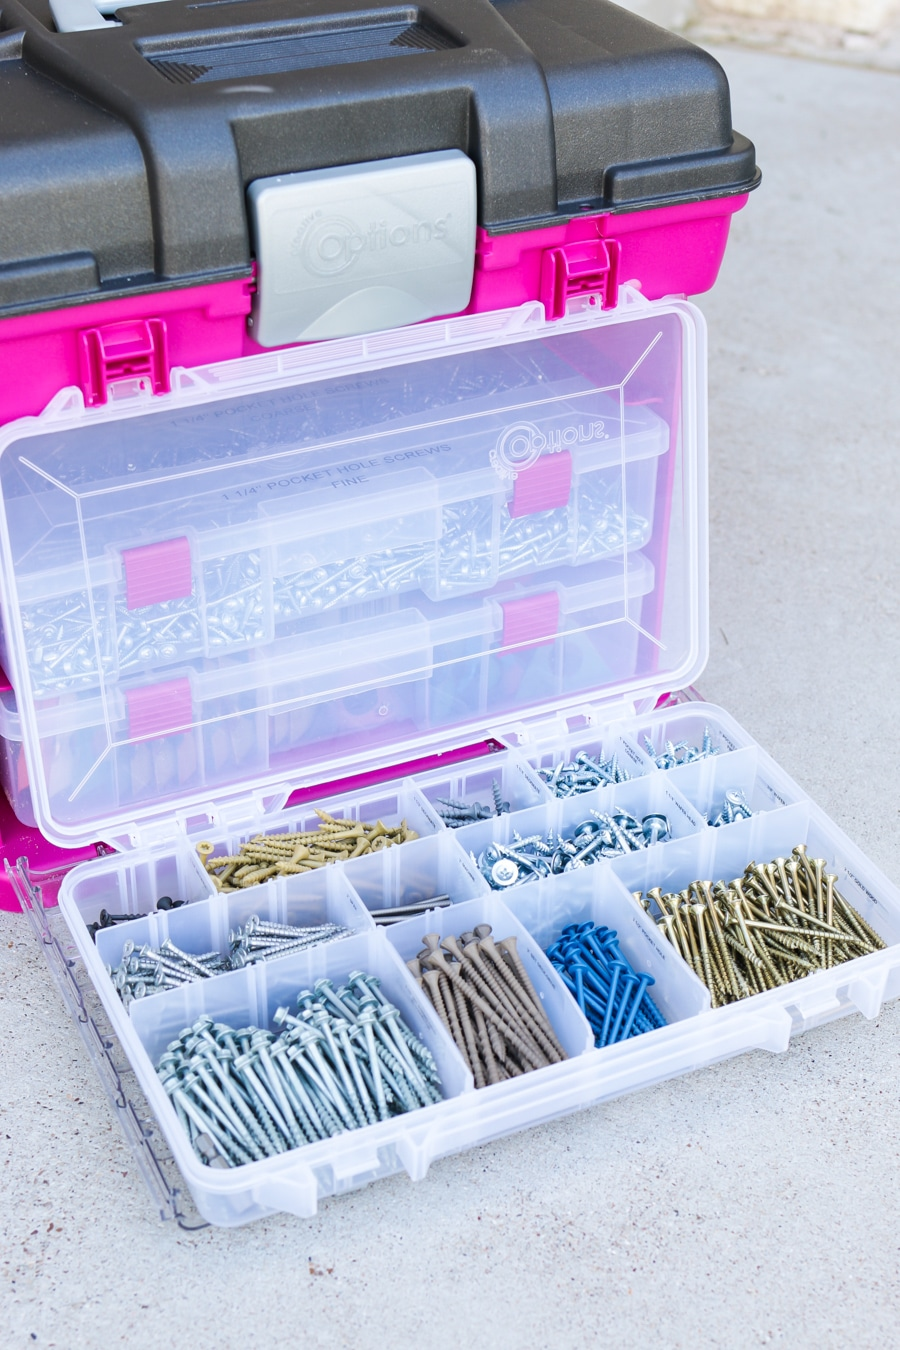 How to stylishly organize and store screws, nails, and other fasteners